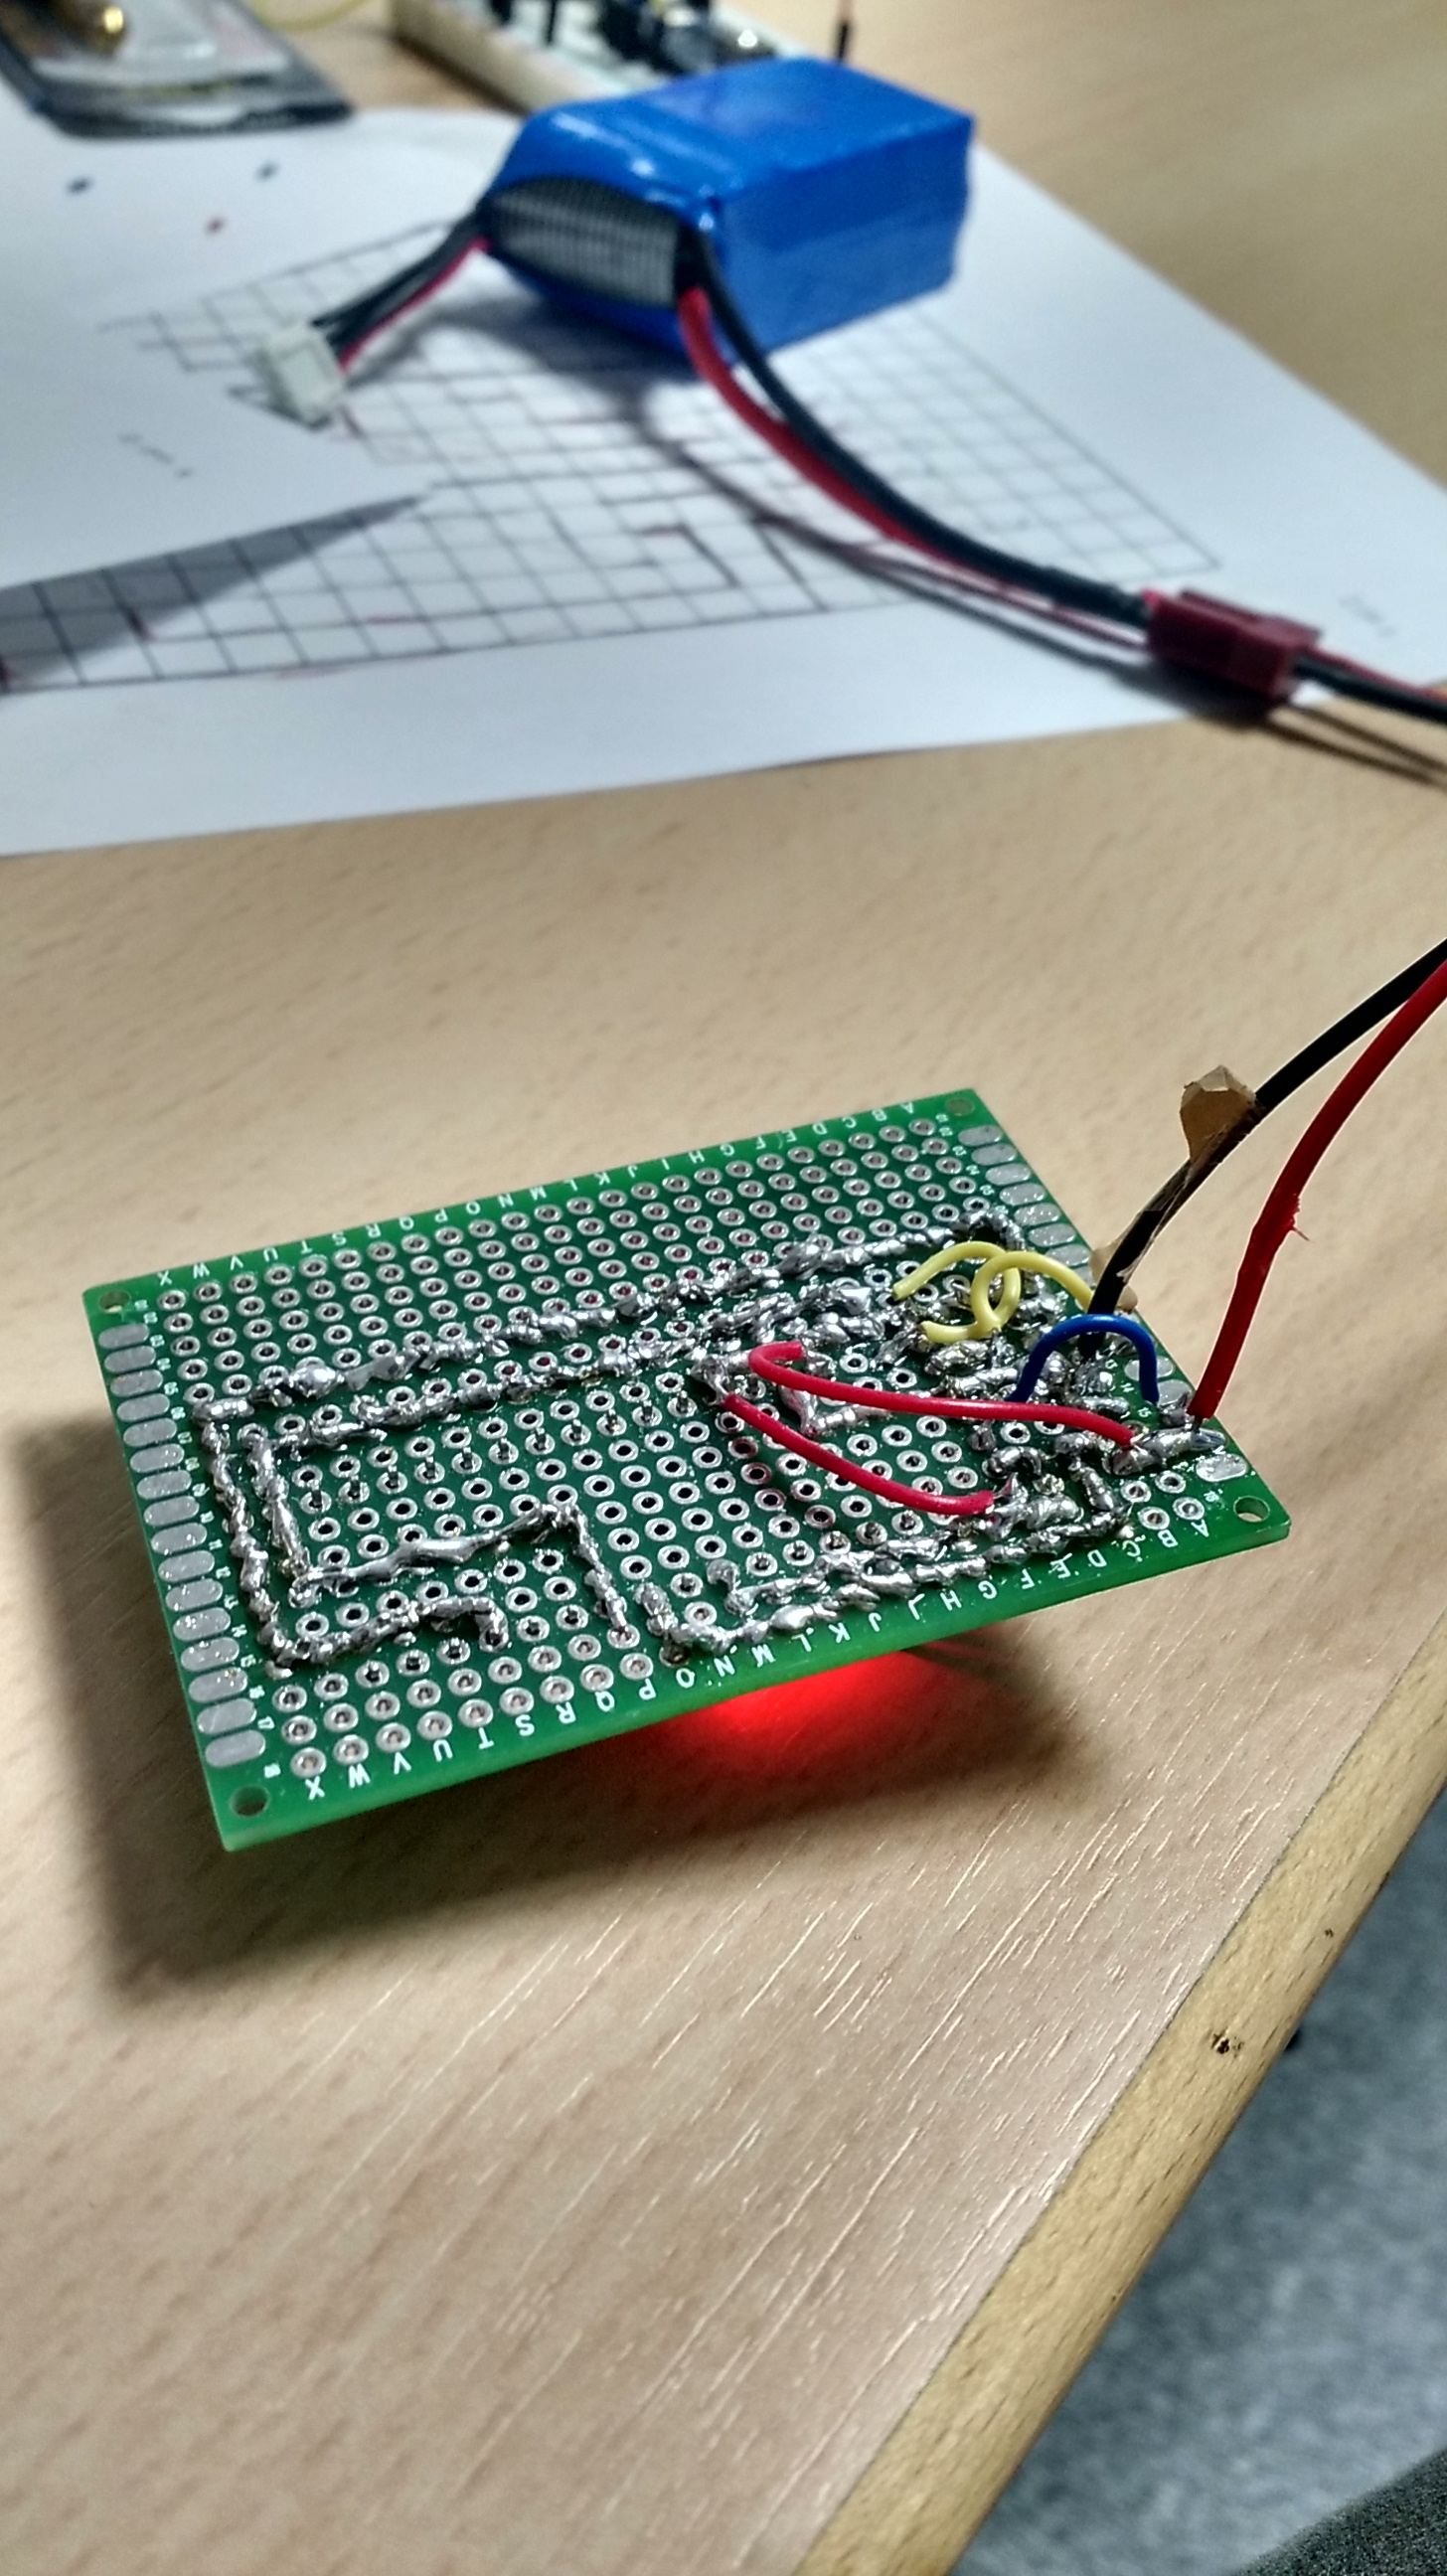 Reviving Old Wire Guided Buggy Fabidouille And Now Also A Picture Of The First Prototype Board For This Circuit As We Lacked Experience In Pcb Usage At Point Our Attempt Was Bit Laborious Not Cleanest Imaginable From On Well